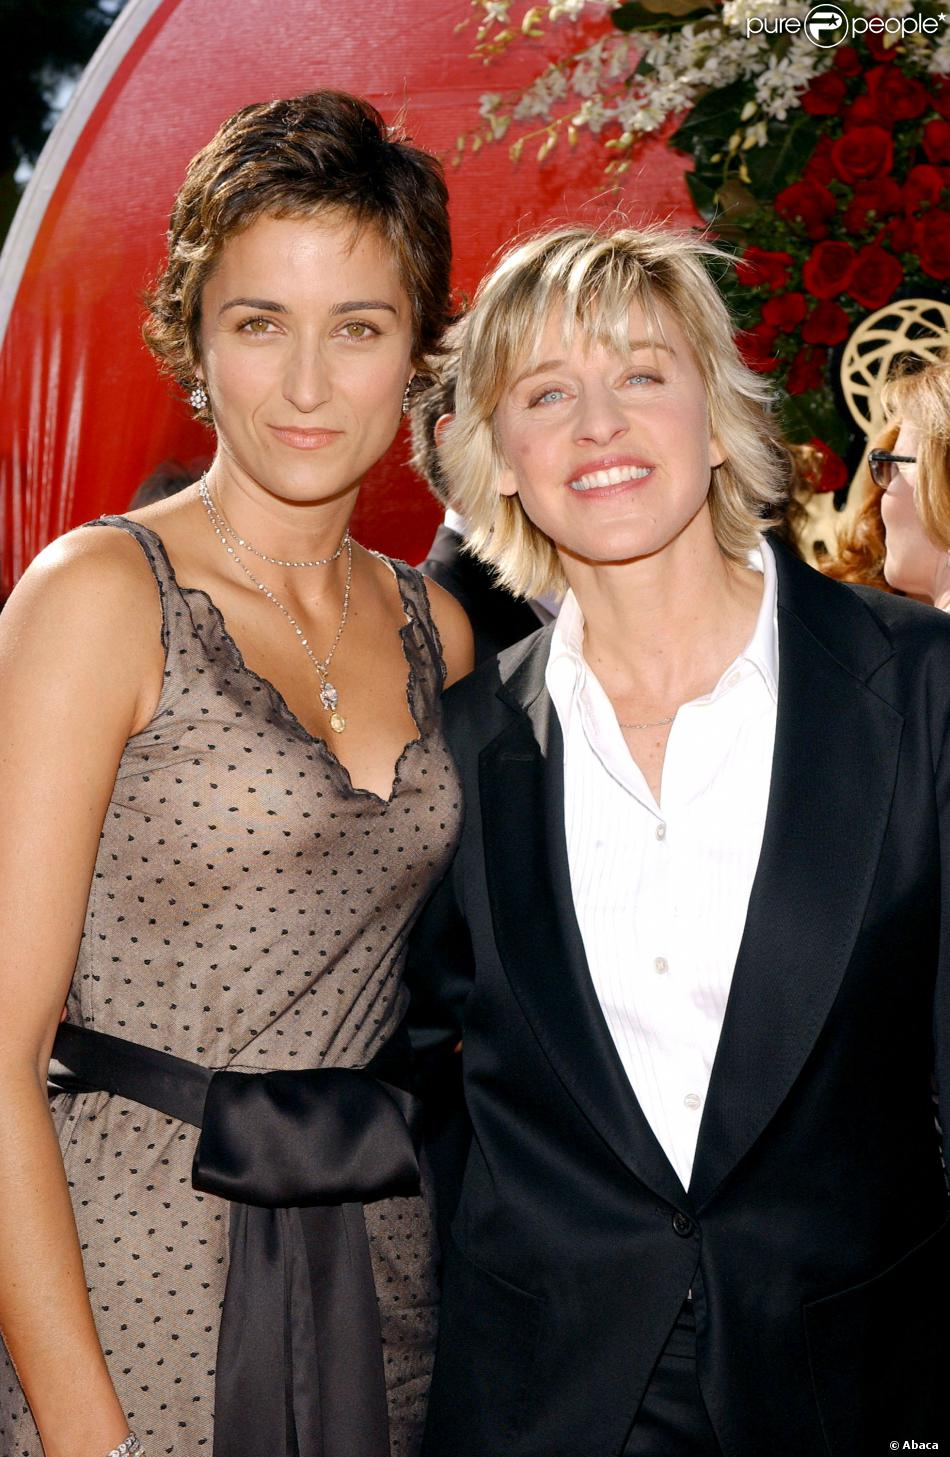 Ellen DeGeneres couple